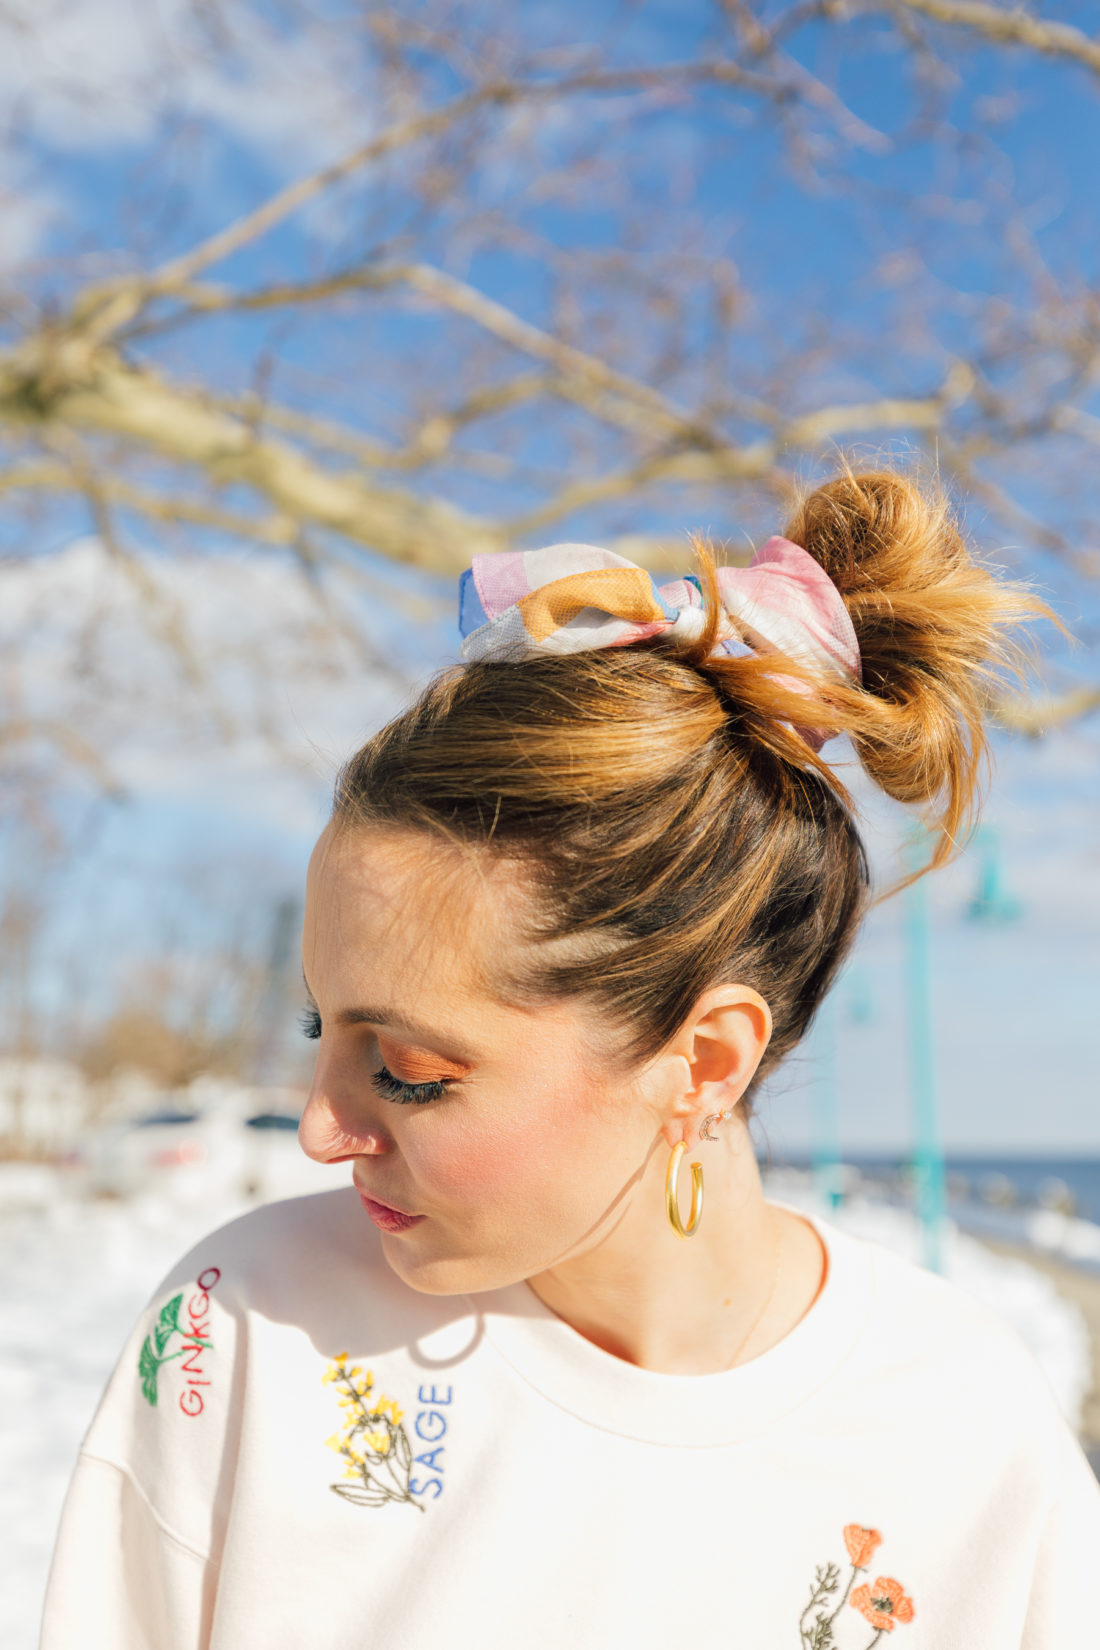 Eva Amurri Martino of Happily Eva After wears a kerchief bun in her hair